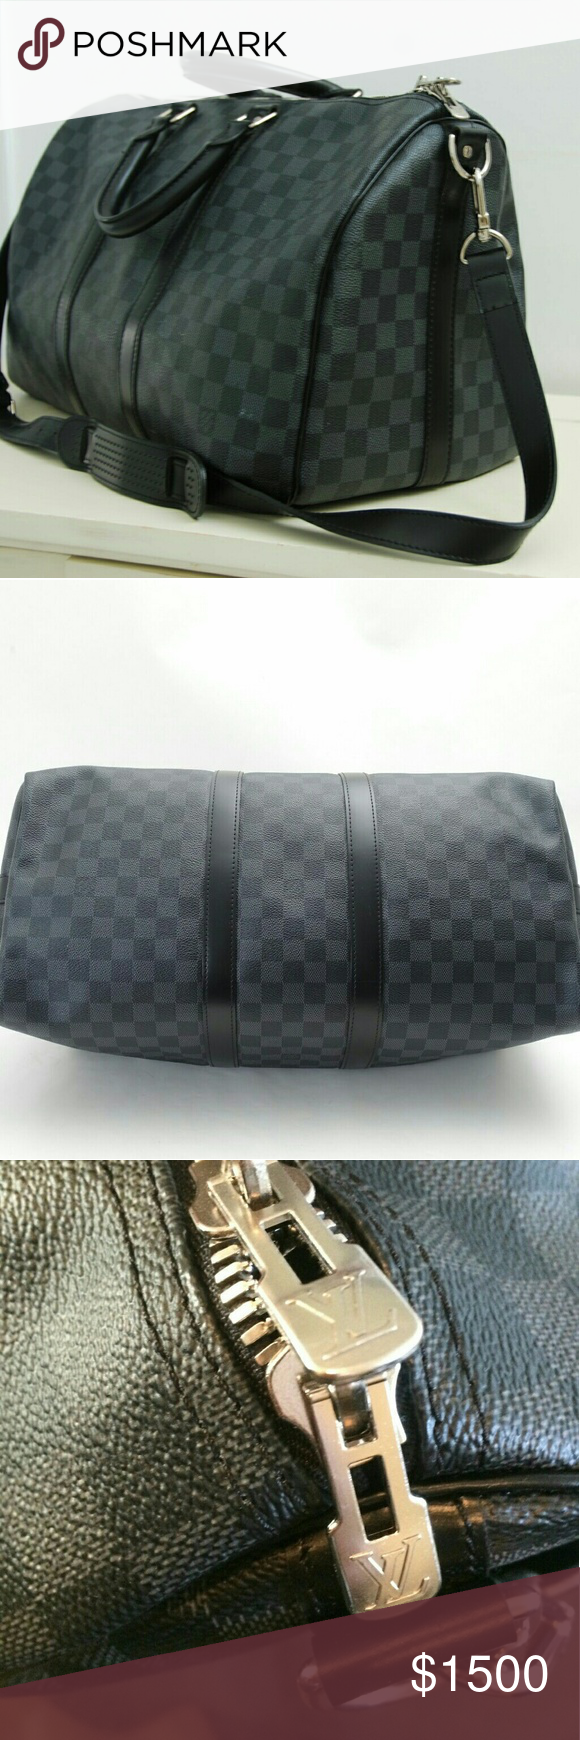 Louis Vuitton Keepall Bandouliere 45 N41418 💯 Authentic Louis Vuitton Keepall 45 Bag Damier Graphite Canvas Used ONLY 2X...In MINT Condition Comes with Clear Bottom Shaper  Comes with the Dustbag and Box Copy of receipt available  ID Tag has the intials J.C hot stamped  Cabin Size Size: 17.7 x 10.6 x 7.9 inches Email for lower price Louis Vuitton Bags Travel Bags